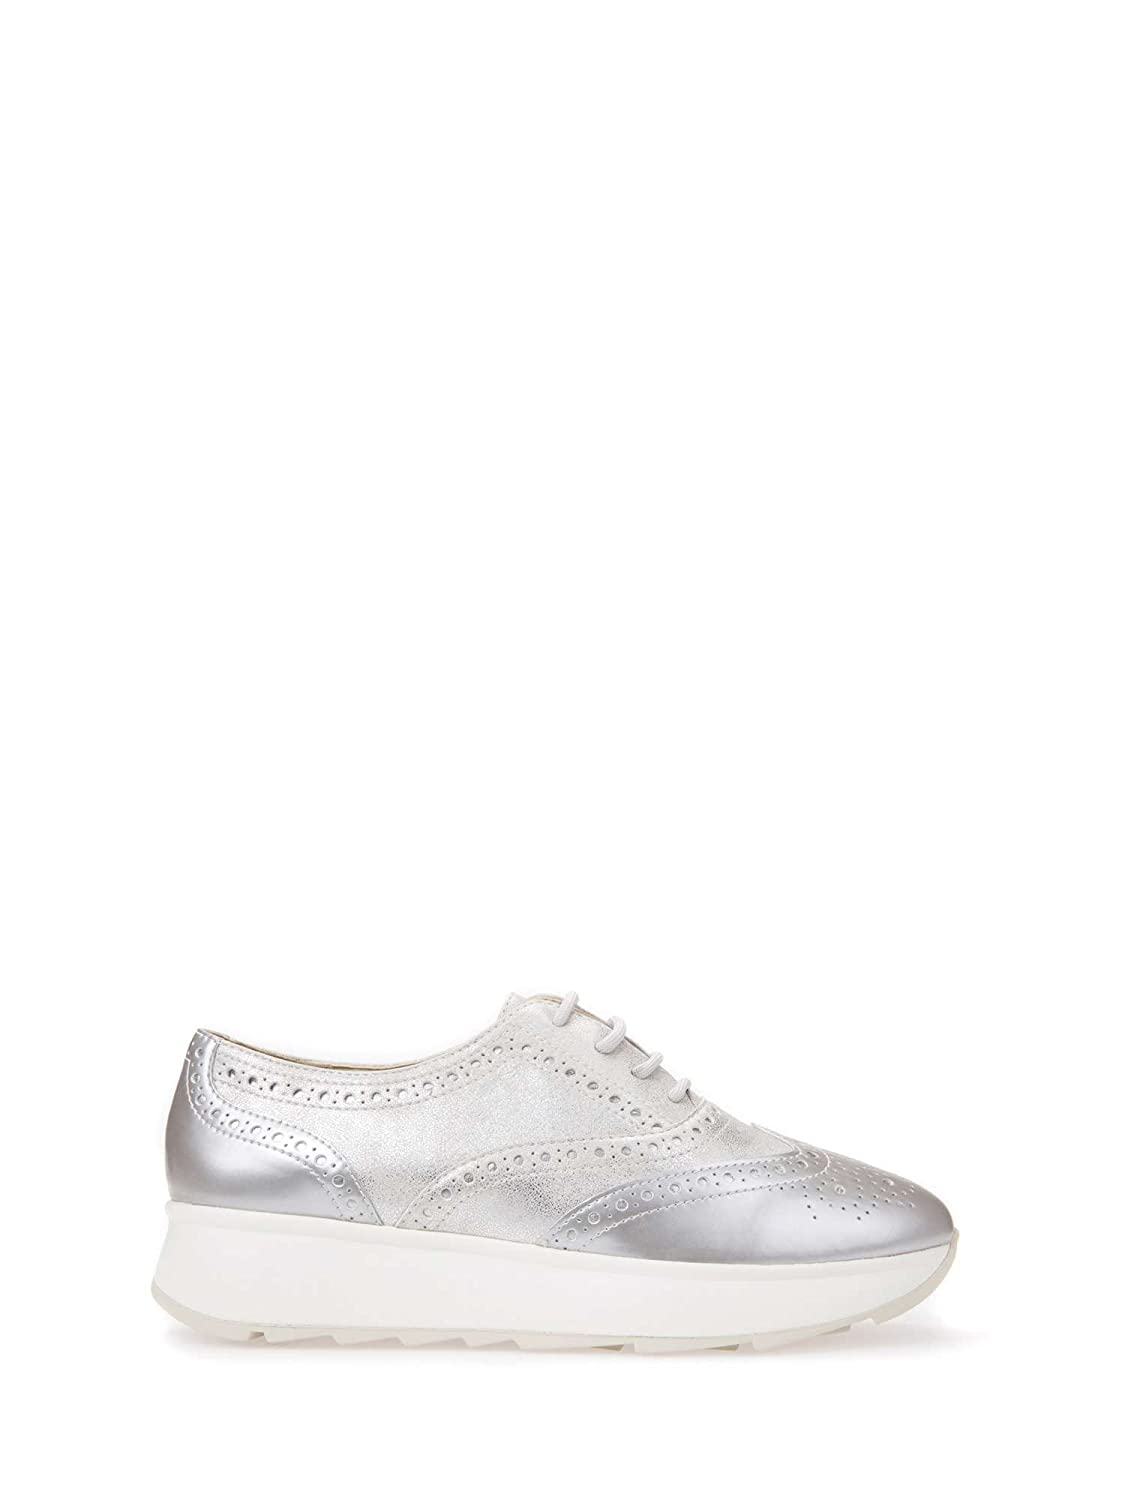 Geox D825TA 0CNPV Zapatos Casual Mujeres 36 EU|Plata